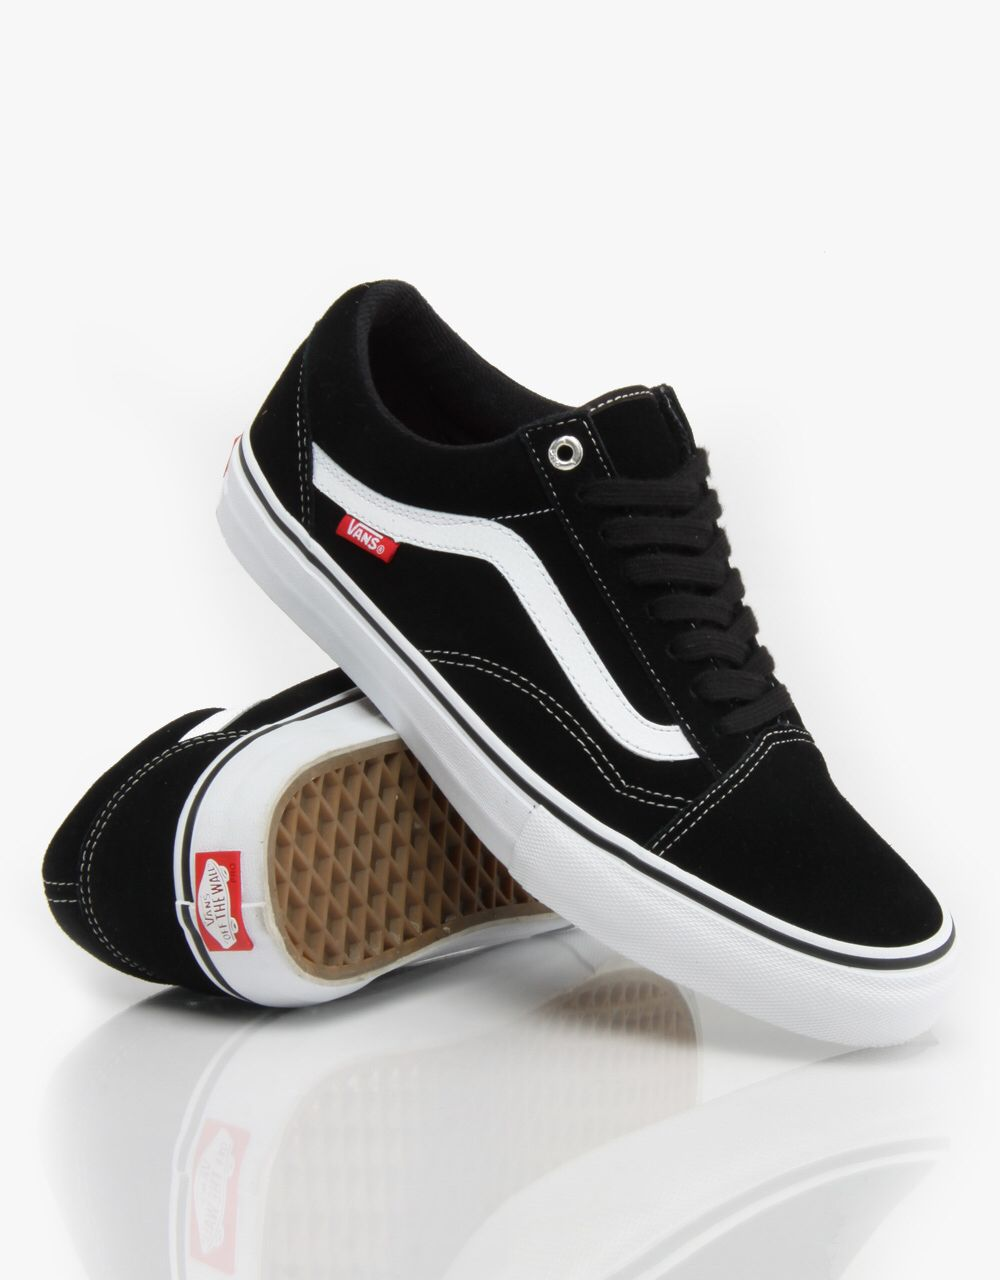 Vans old skool pro with black laces | Sneakers men fashion